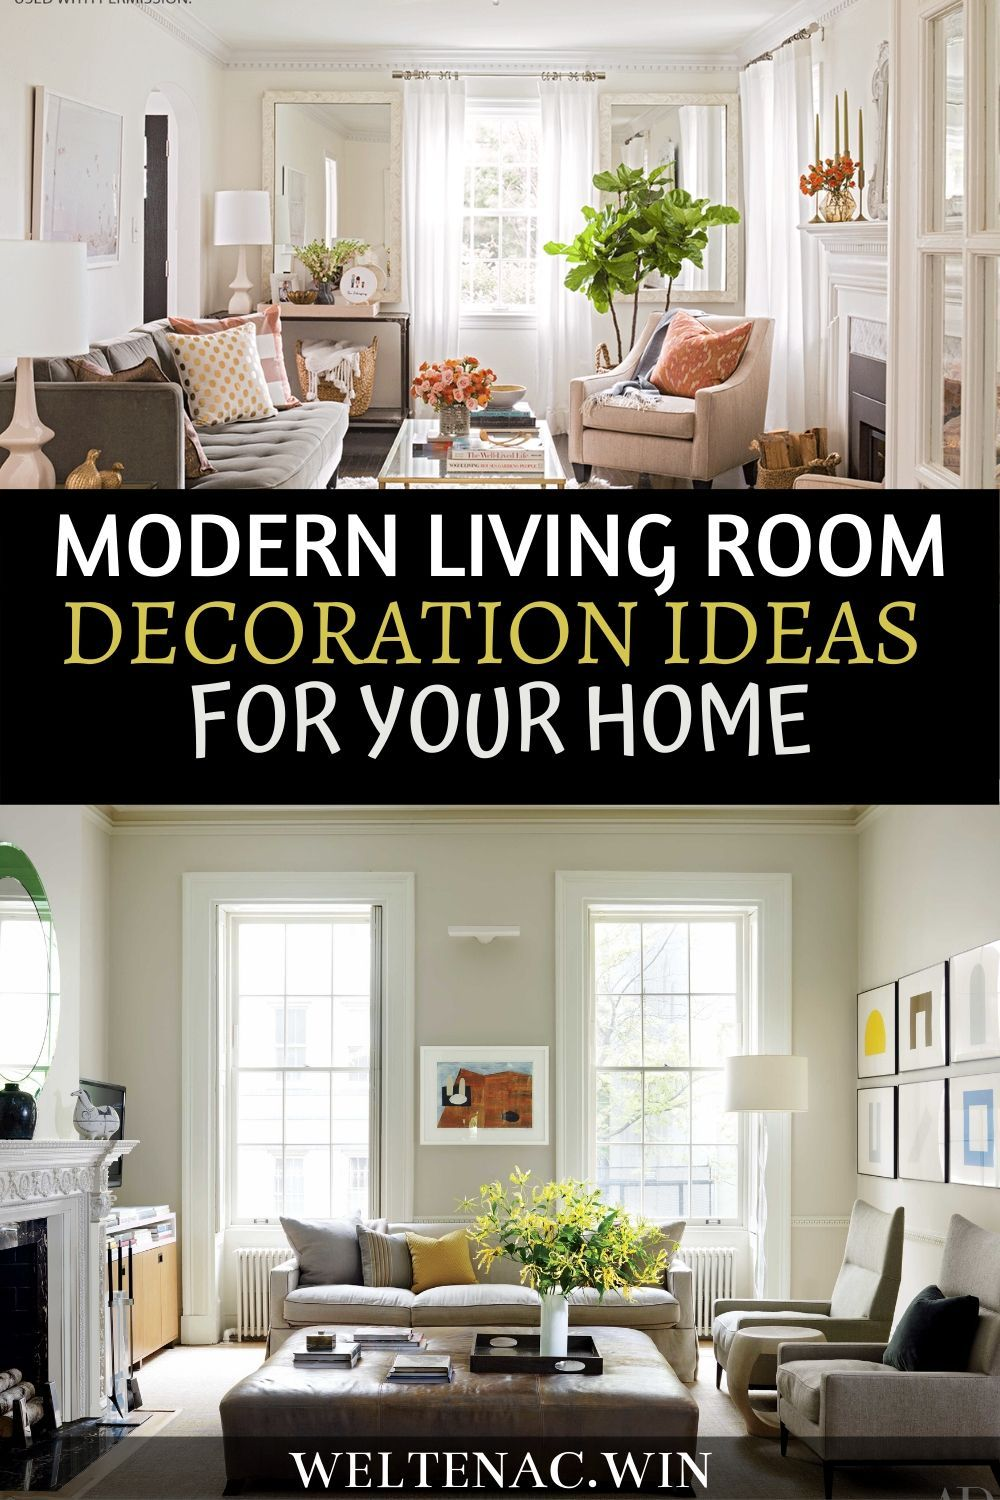 Living rooms should be places of relaxation and comfort. If you are in a strict spending plan; you can generally do it without anyone's help through the following guides. #livingroomdecor #homedecor #decorationtips #homedecorationideas #decorationideas #moderndecor